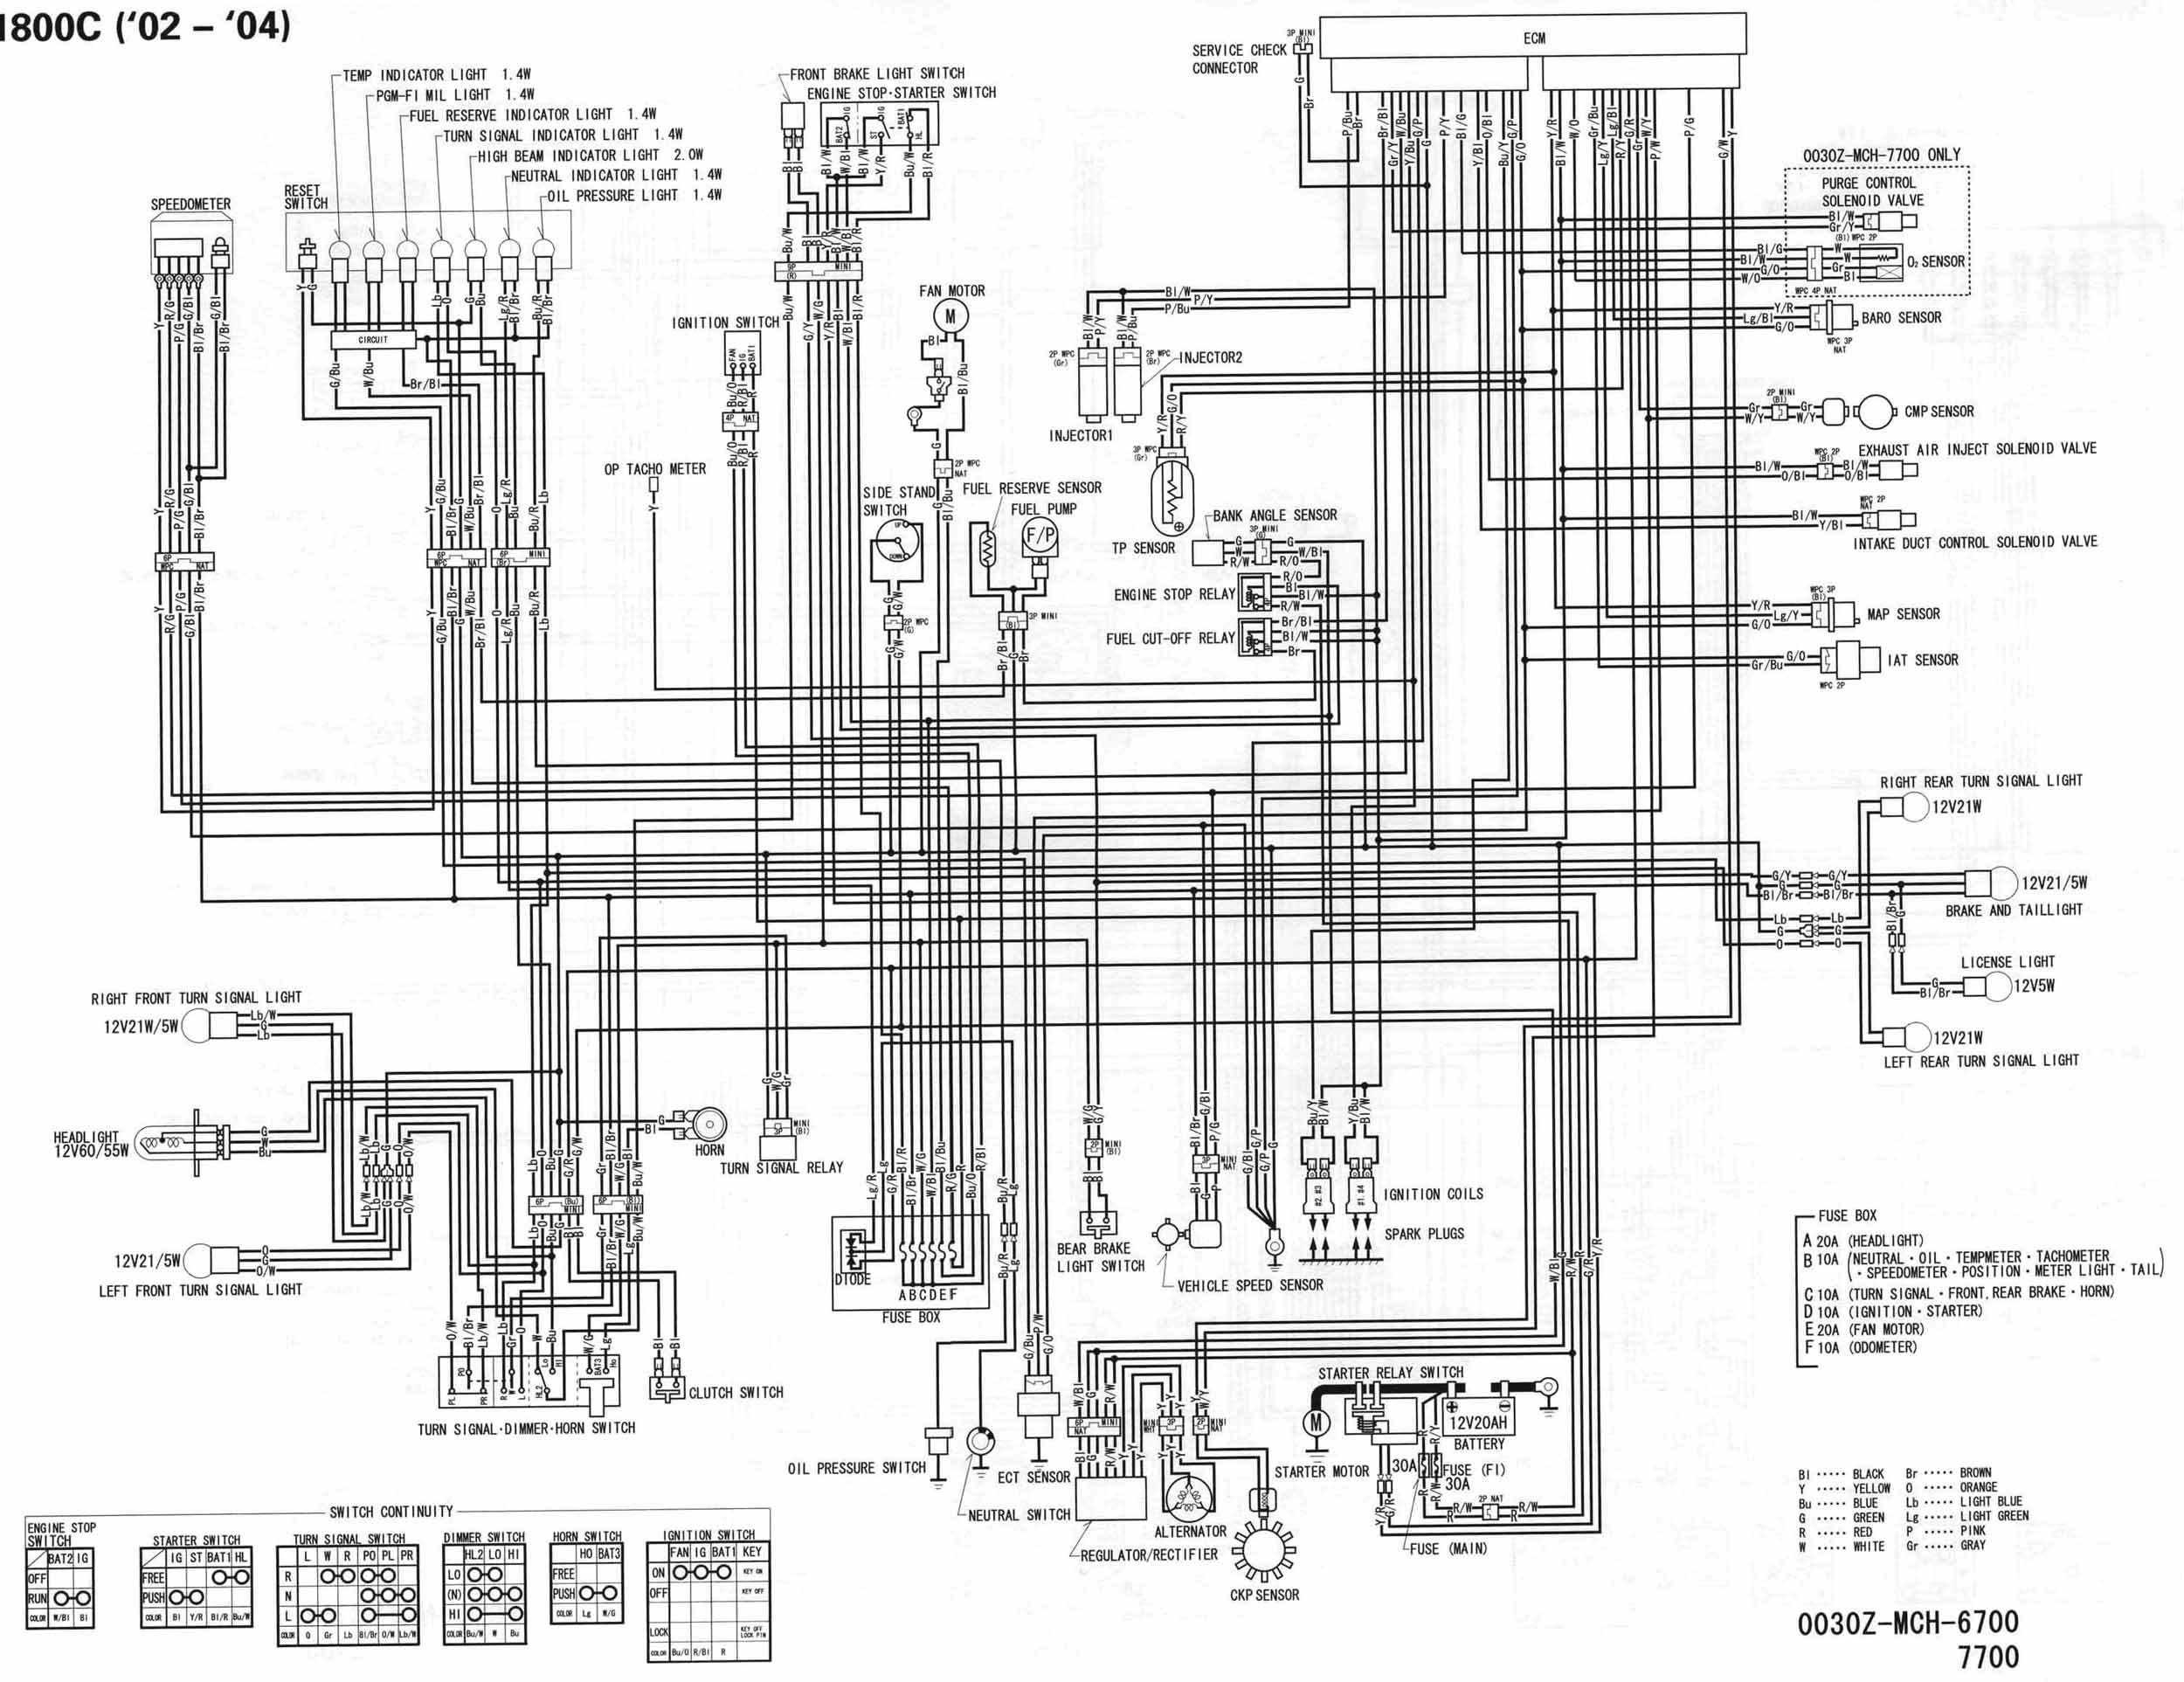 Wiring Diagram For A 2004 Honda Vtx 1300 C on 1100 Honda Shadow Wiring Diagram